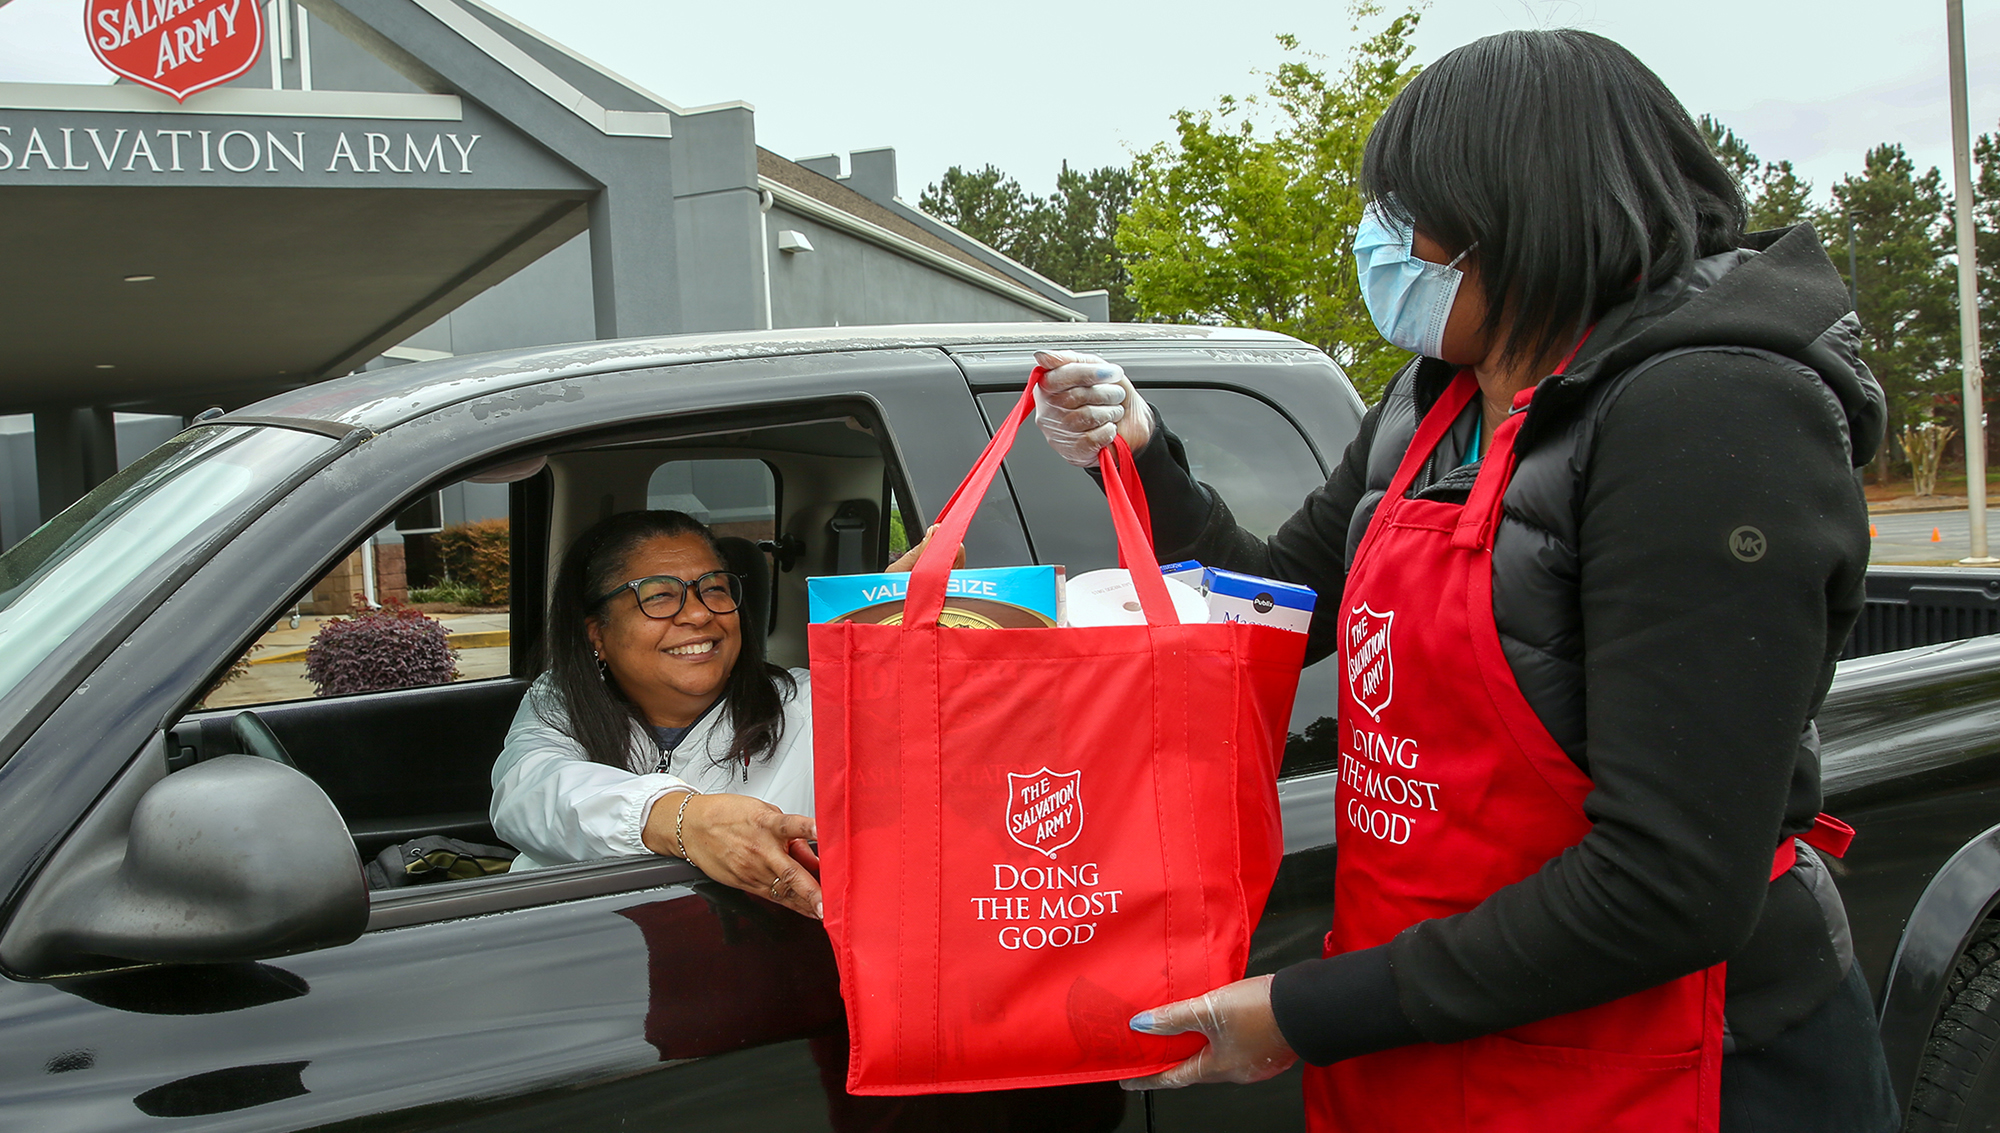 Salvation Army drive through food program